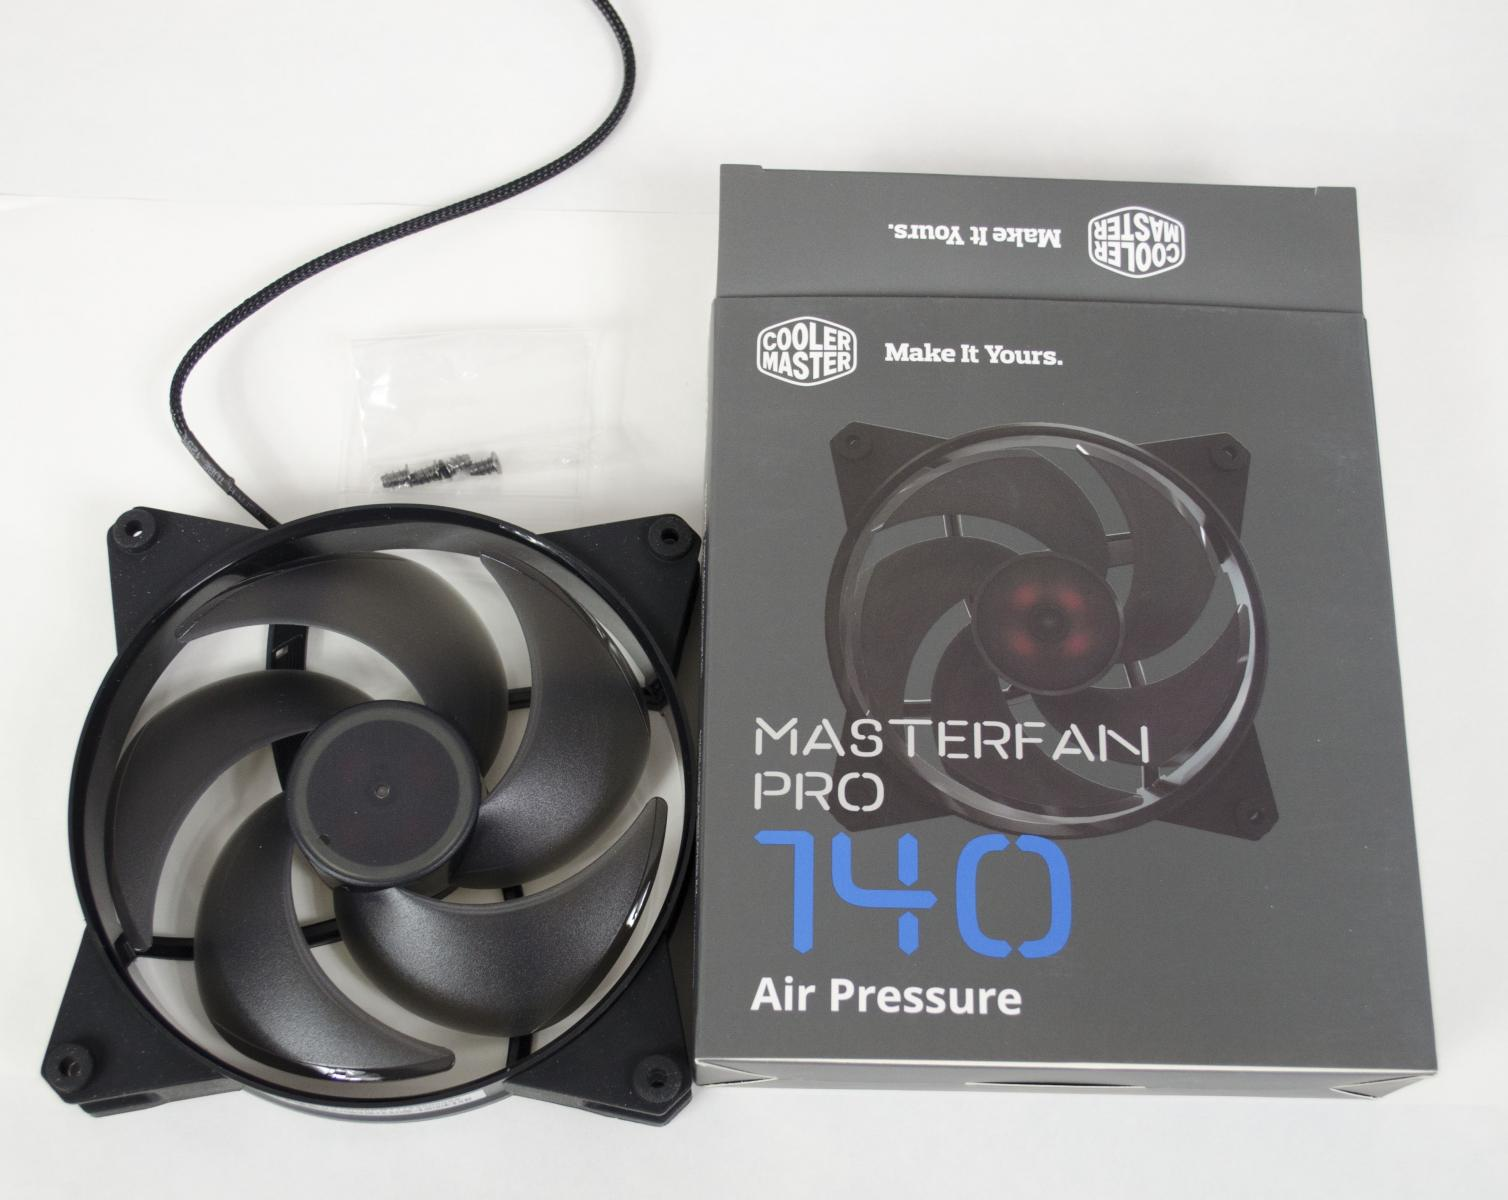 Photo of Cooler Master GeminII S524 Ver2 CPU Cooler w/NEW 140mm Pressure Fan!